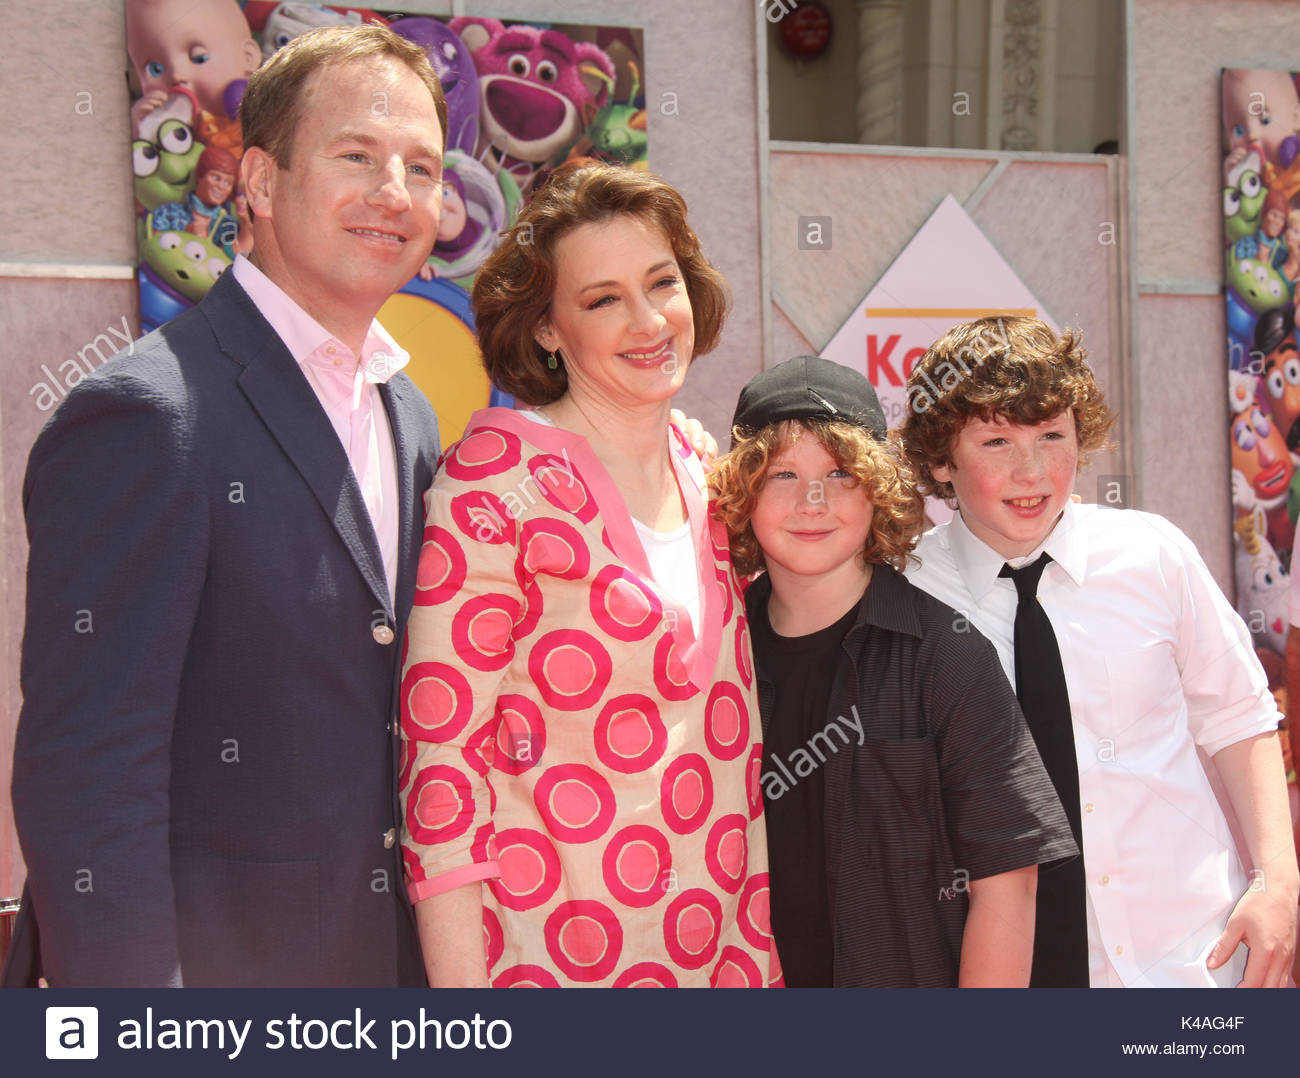 Joan Cusack Arrivals For The Toy Story 3 Premiere Stock Photo